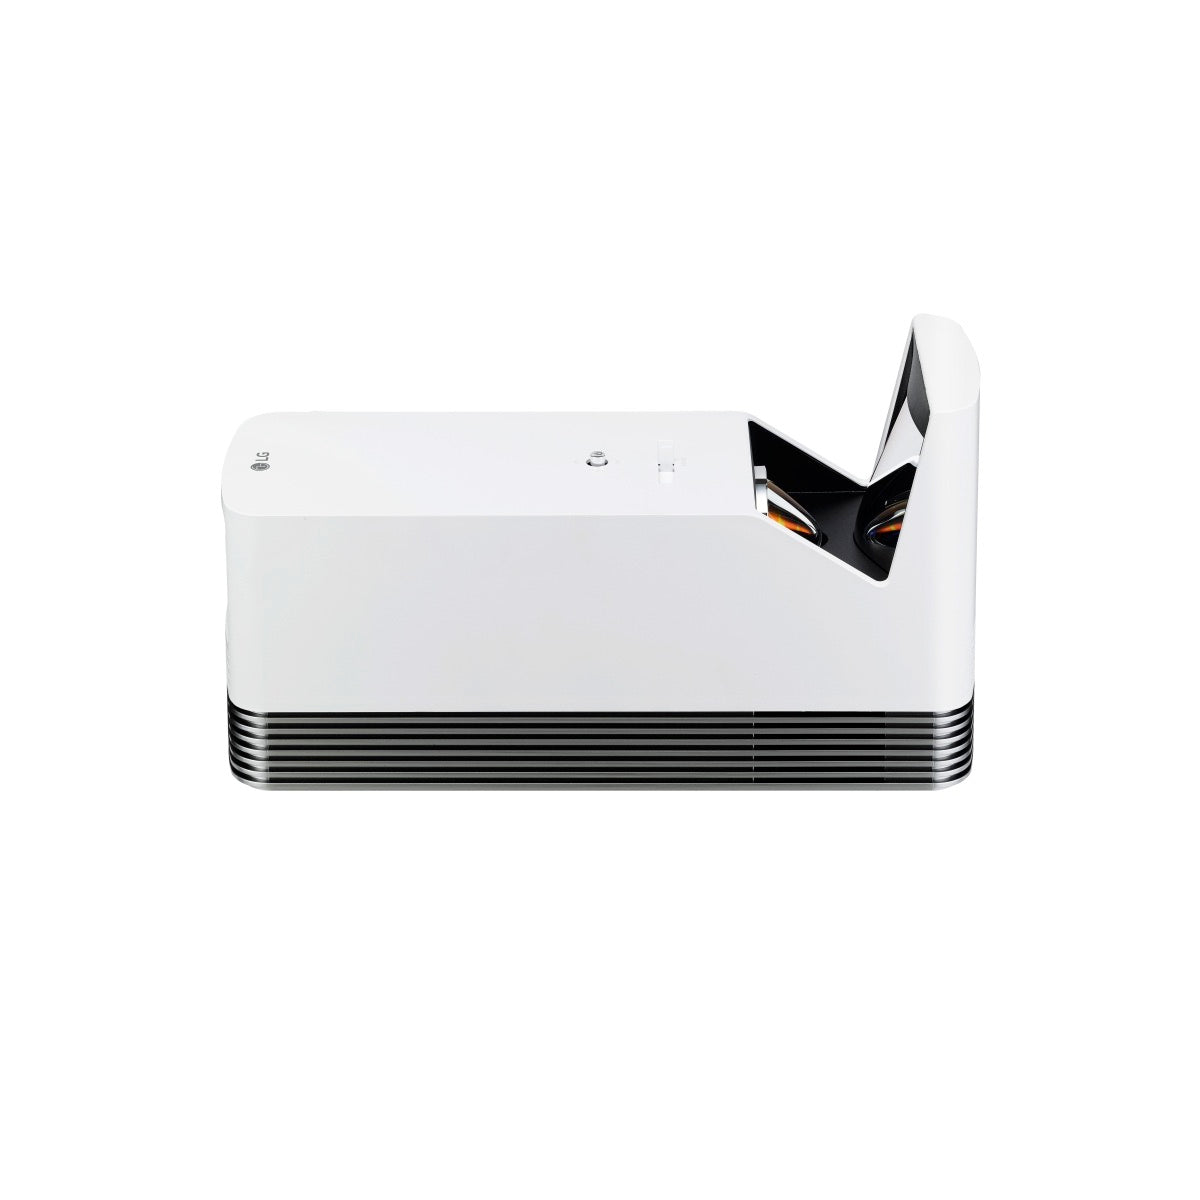 LG Projectors HF85JG - Ultra Short Throw Full HD Laser Home Theatre Projector - AVStore.in